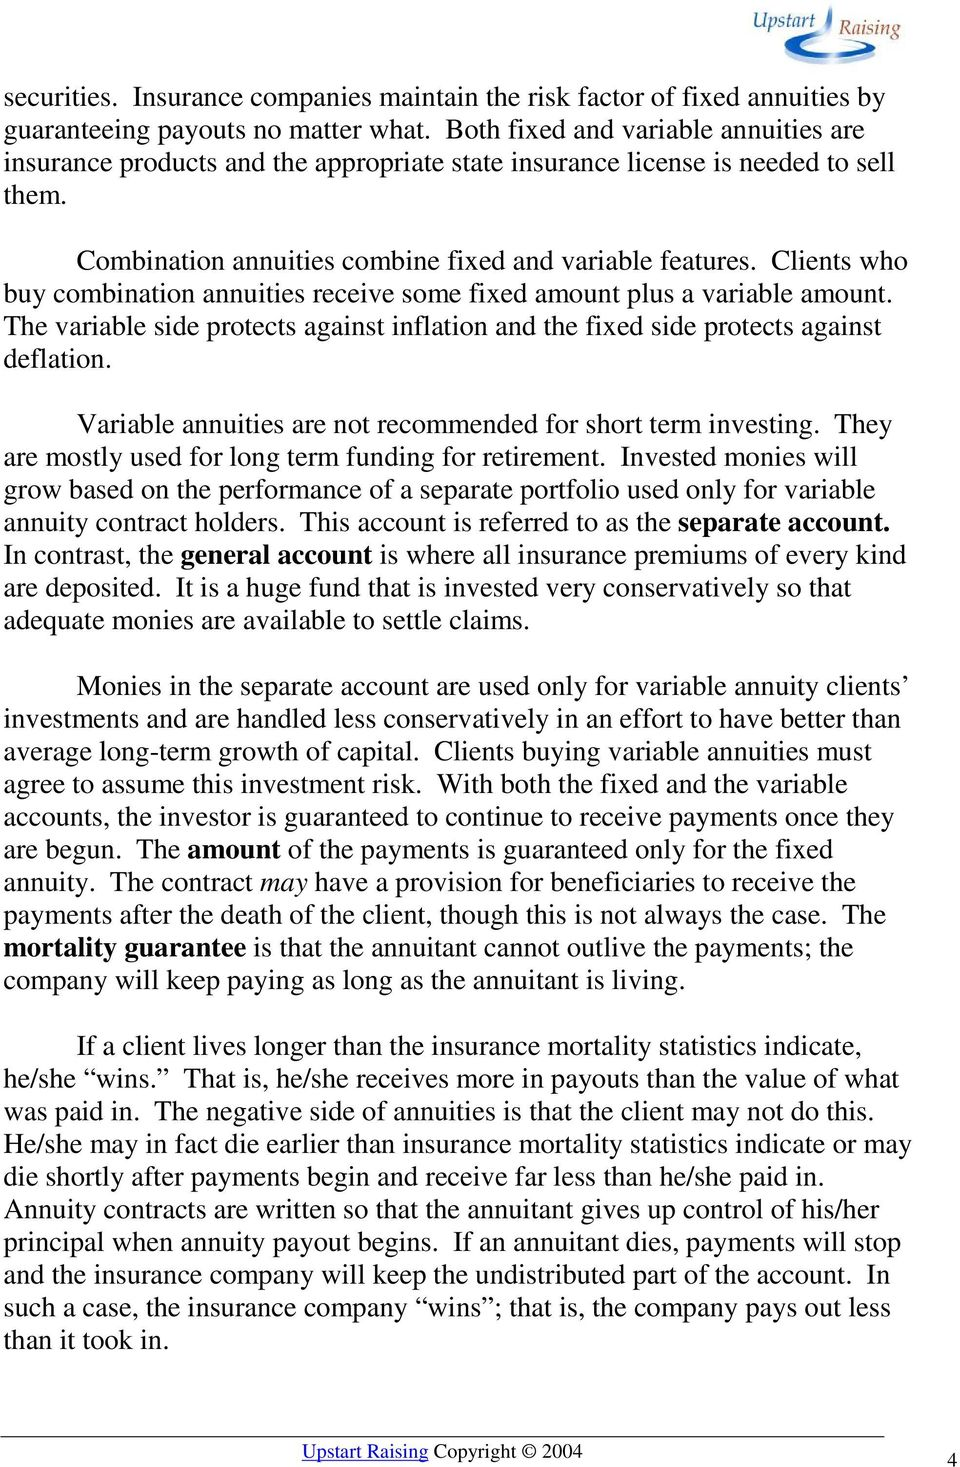 Clients who buy combination annuities receive some fixed amount plus a variable amount. The variable side protects against inflation and the fixed side protects against deflation.